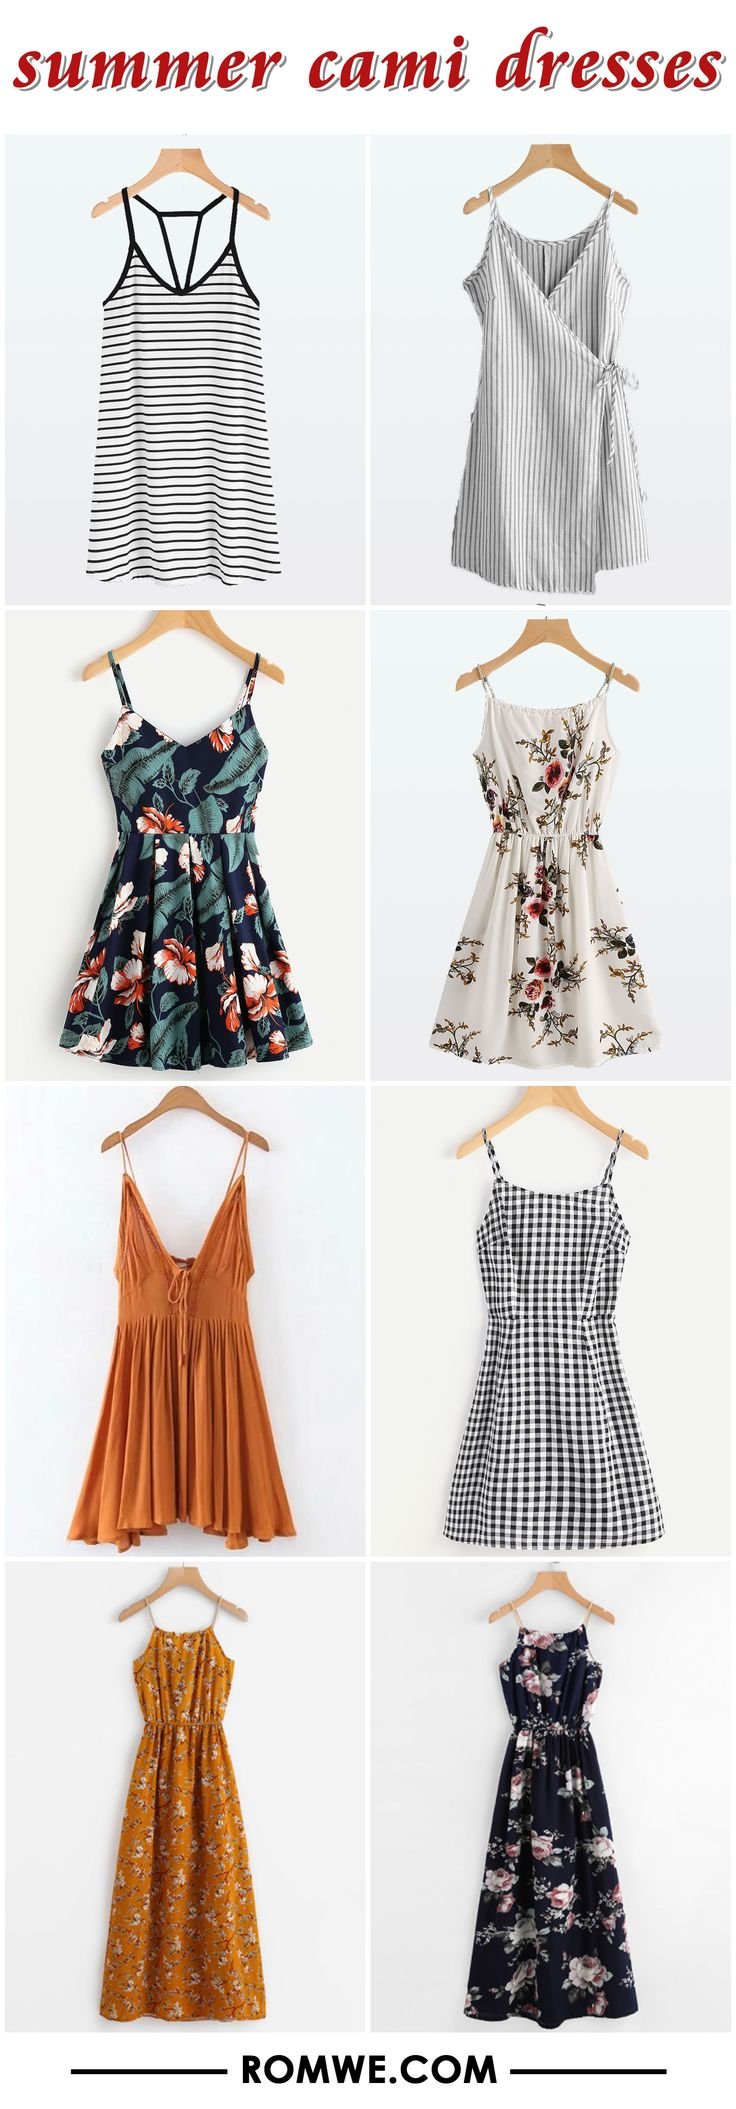 summer cami dresses collection - romwe.com